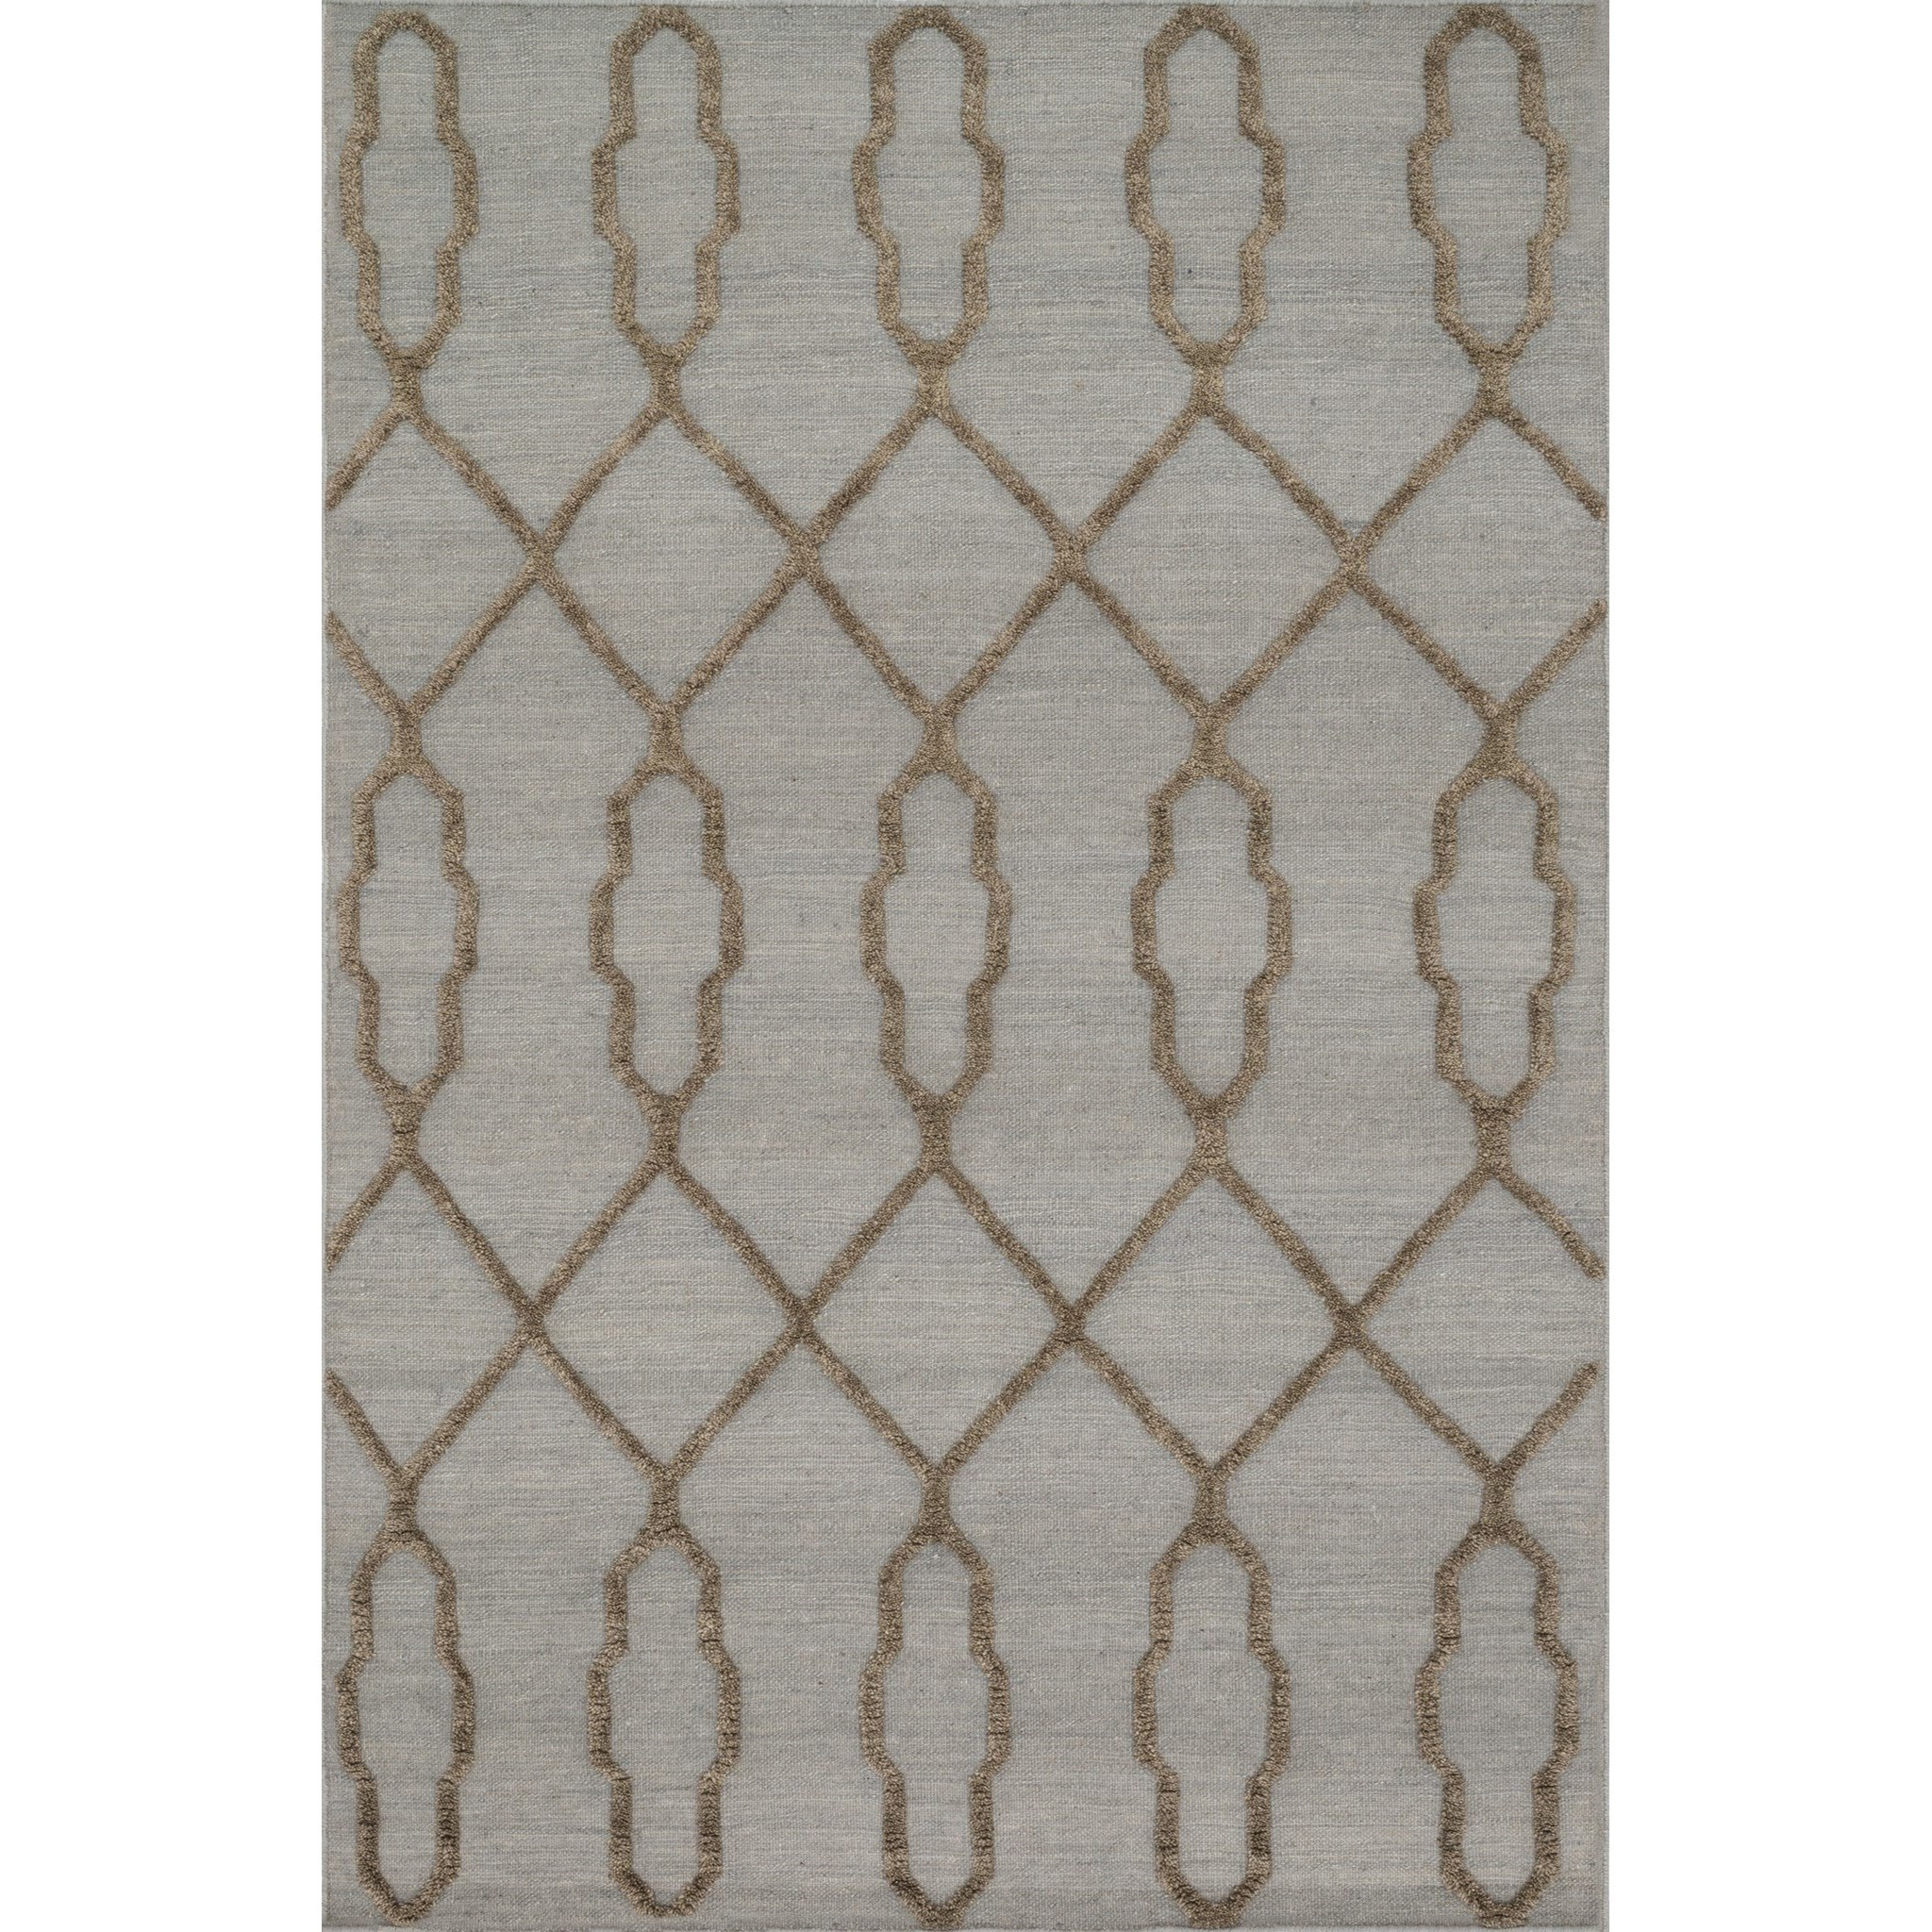 """Adler 5'-0"""" x 7'-6"""" Area Rug by Loloi Rugs at Sprintz Furniture"""